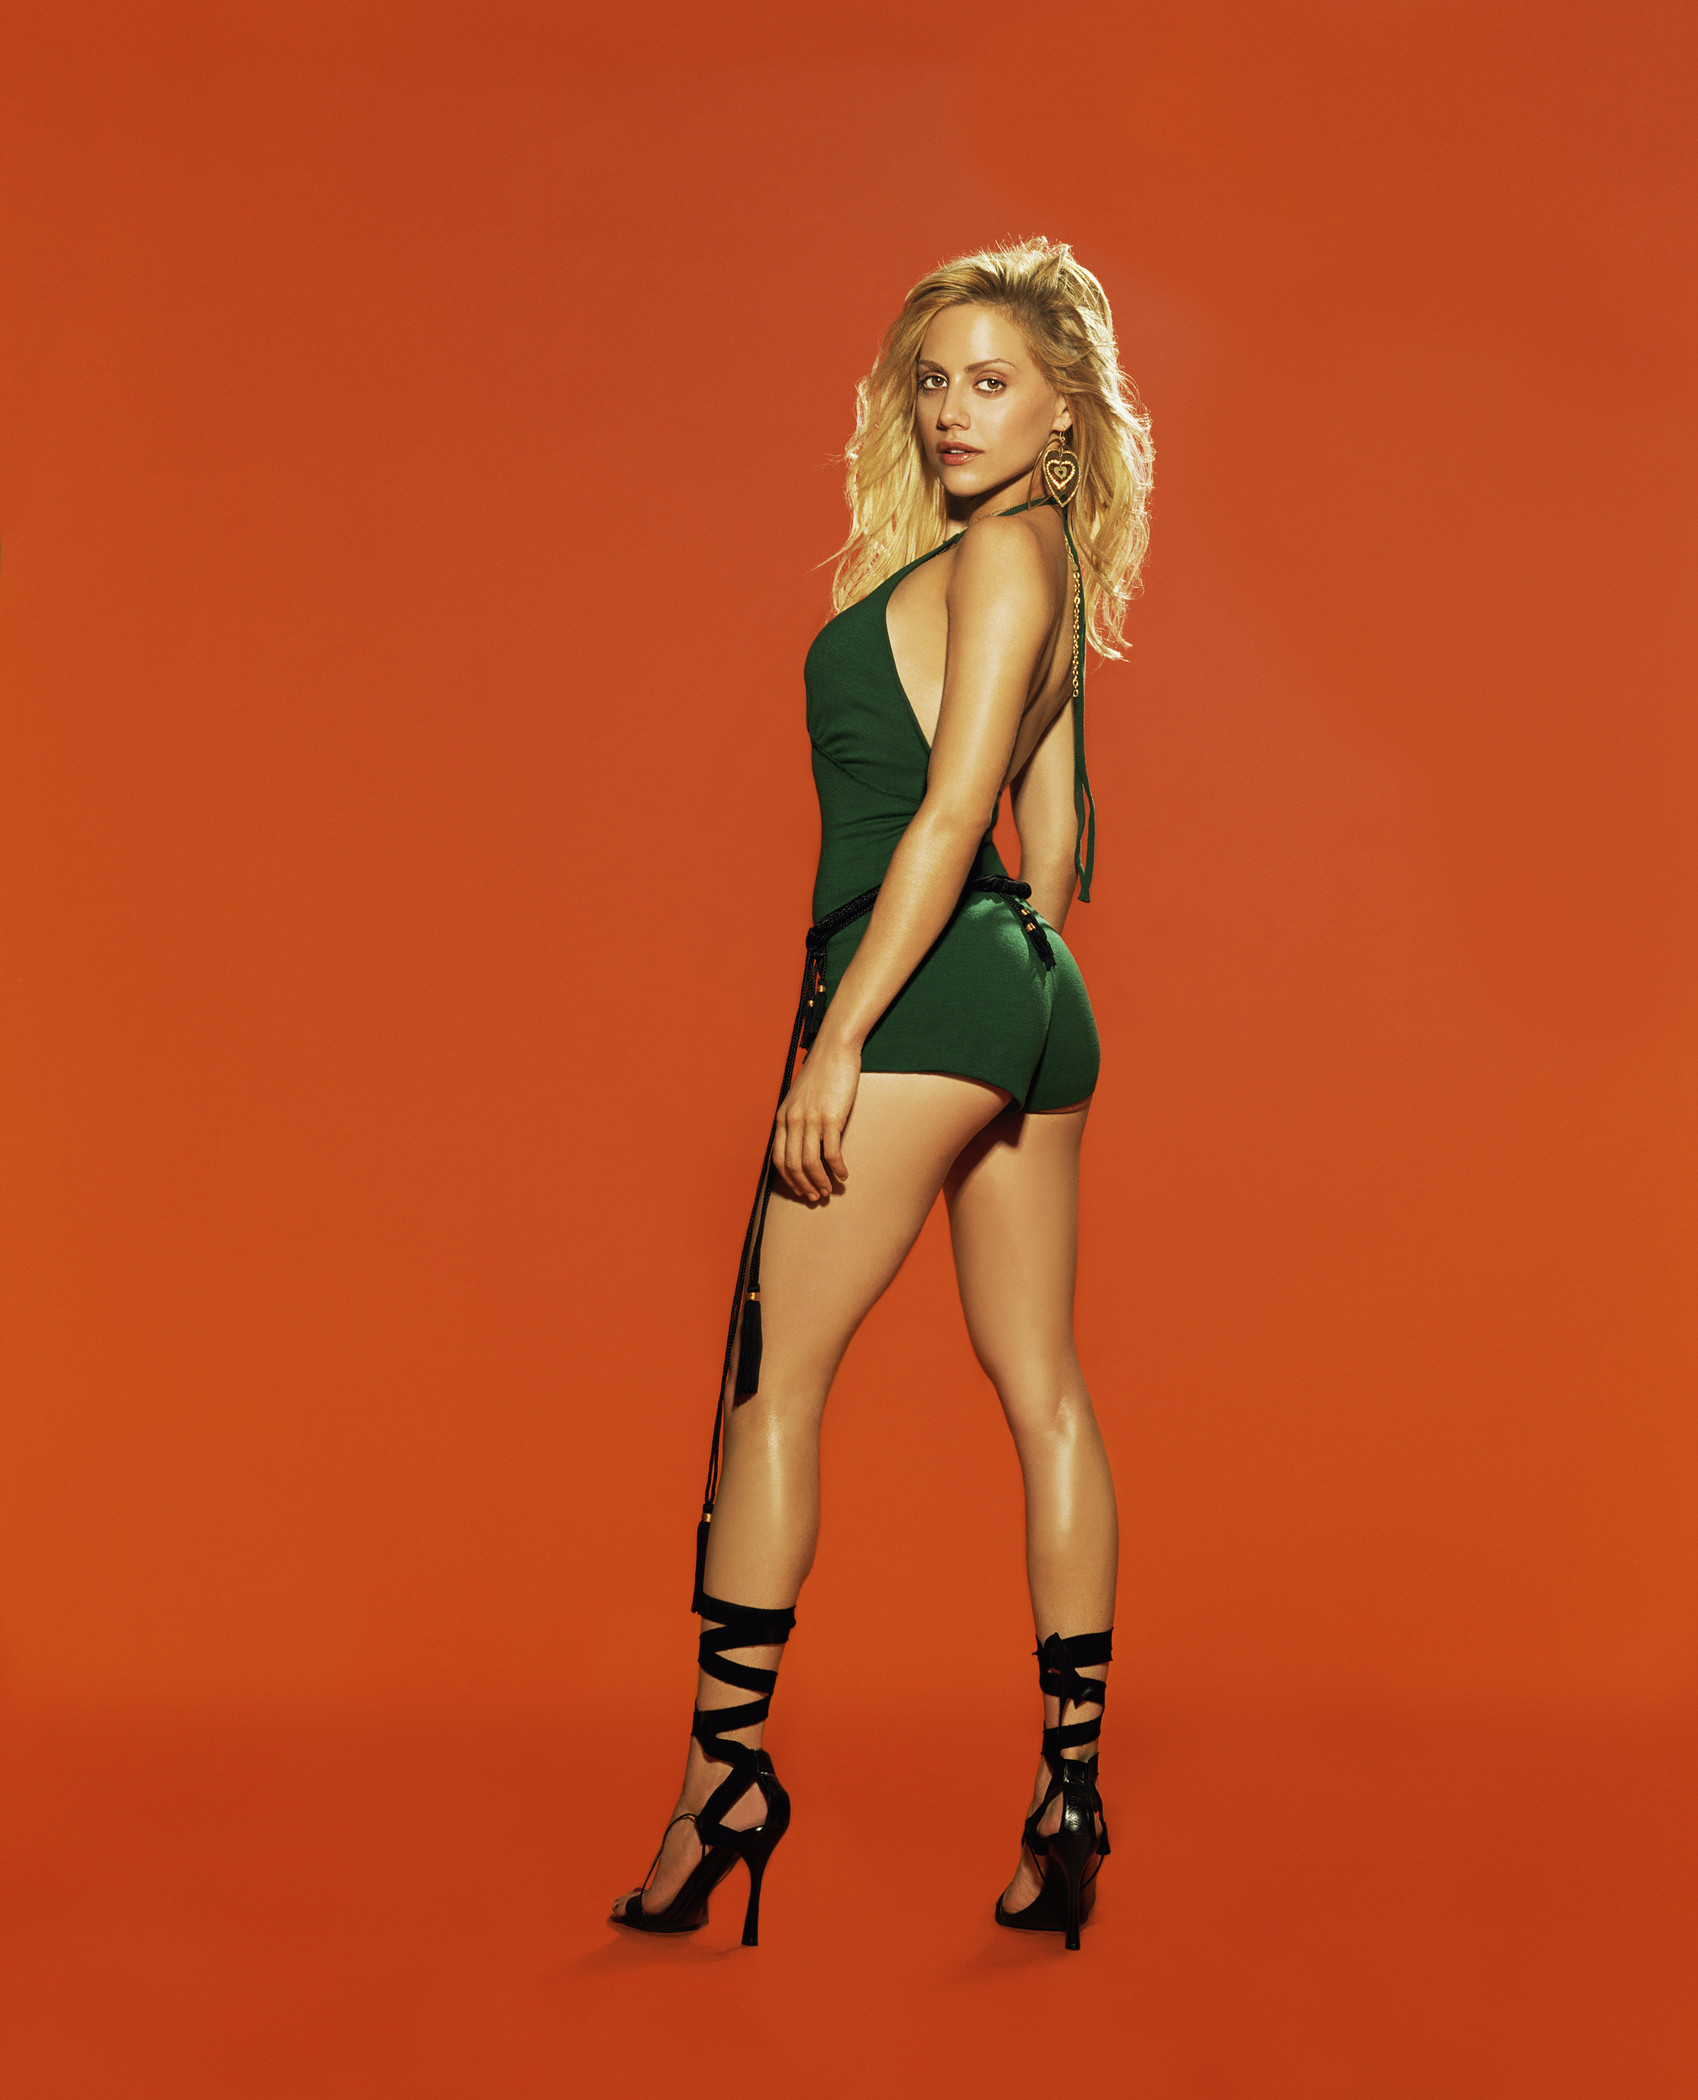 80605_Brittany_Murphy__George_Holz_shoot_3_122_543lo.jpg